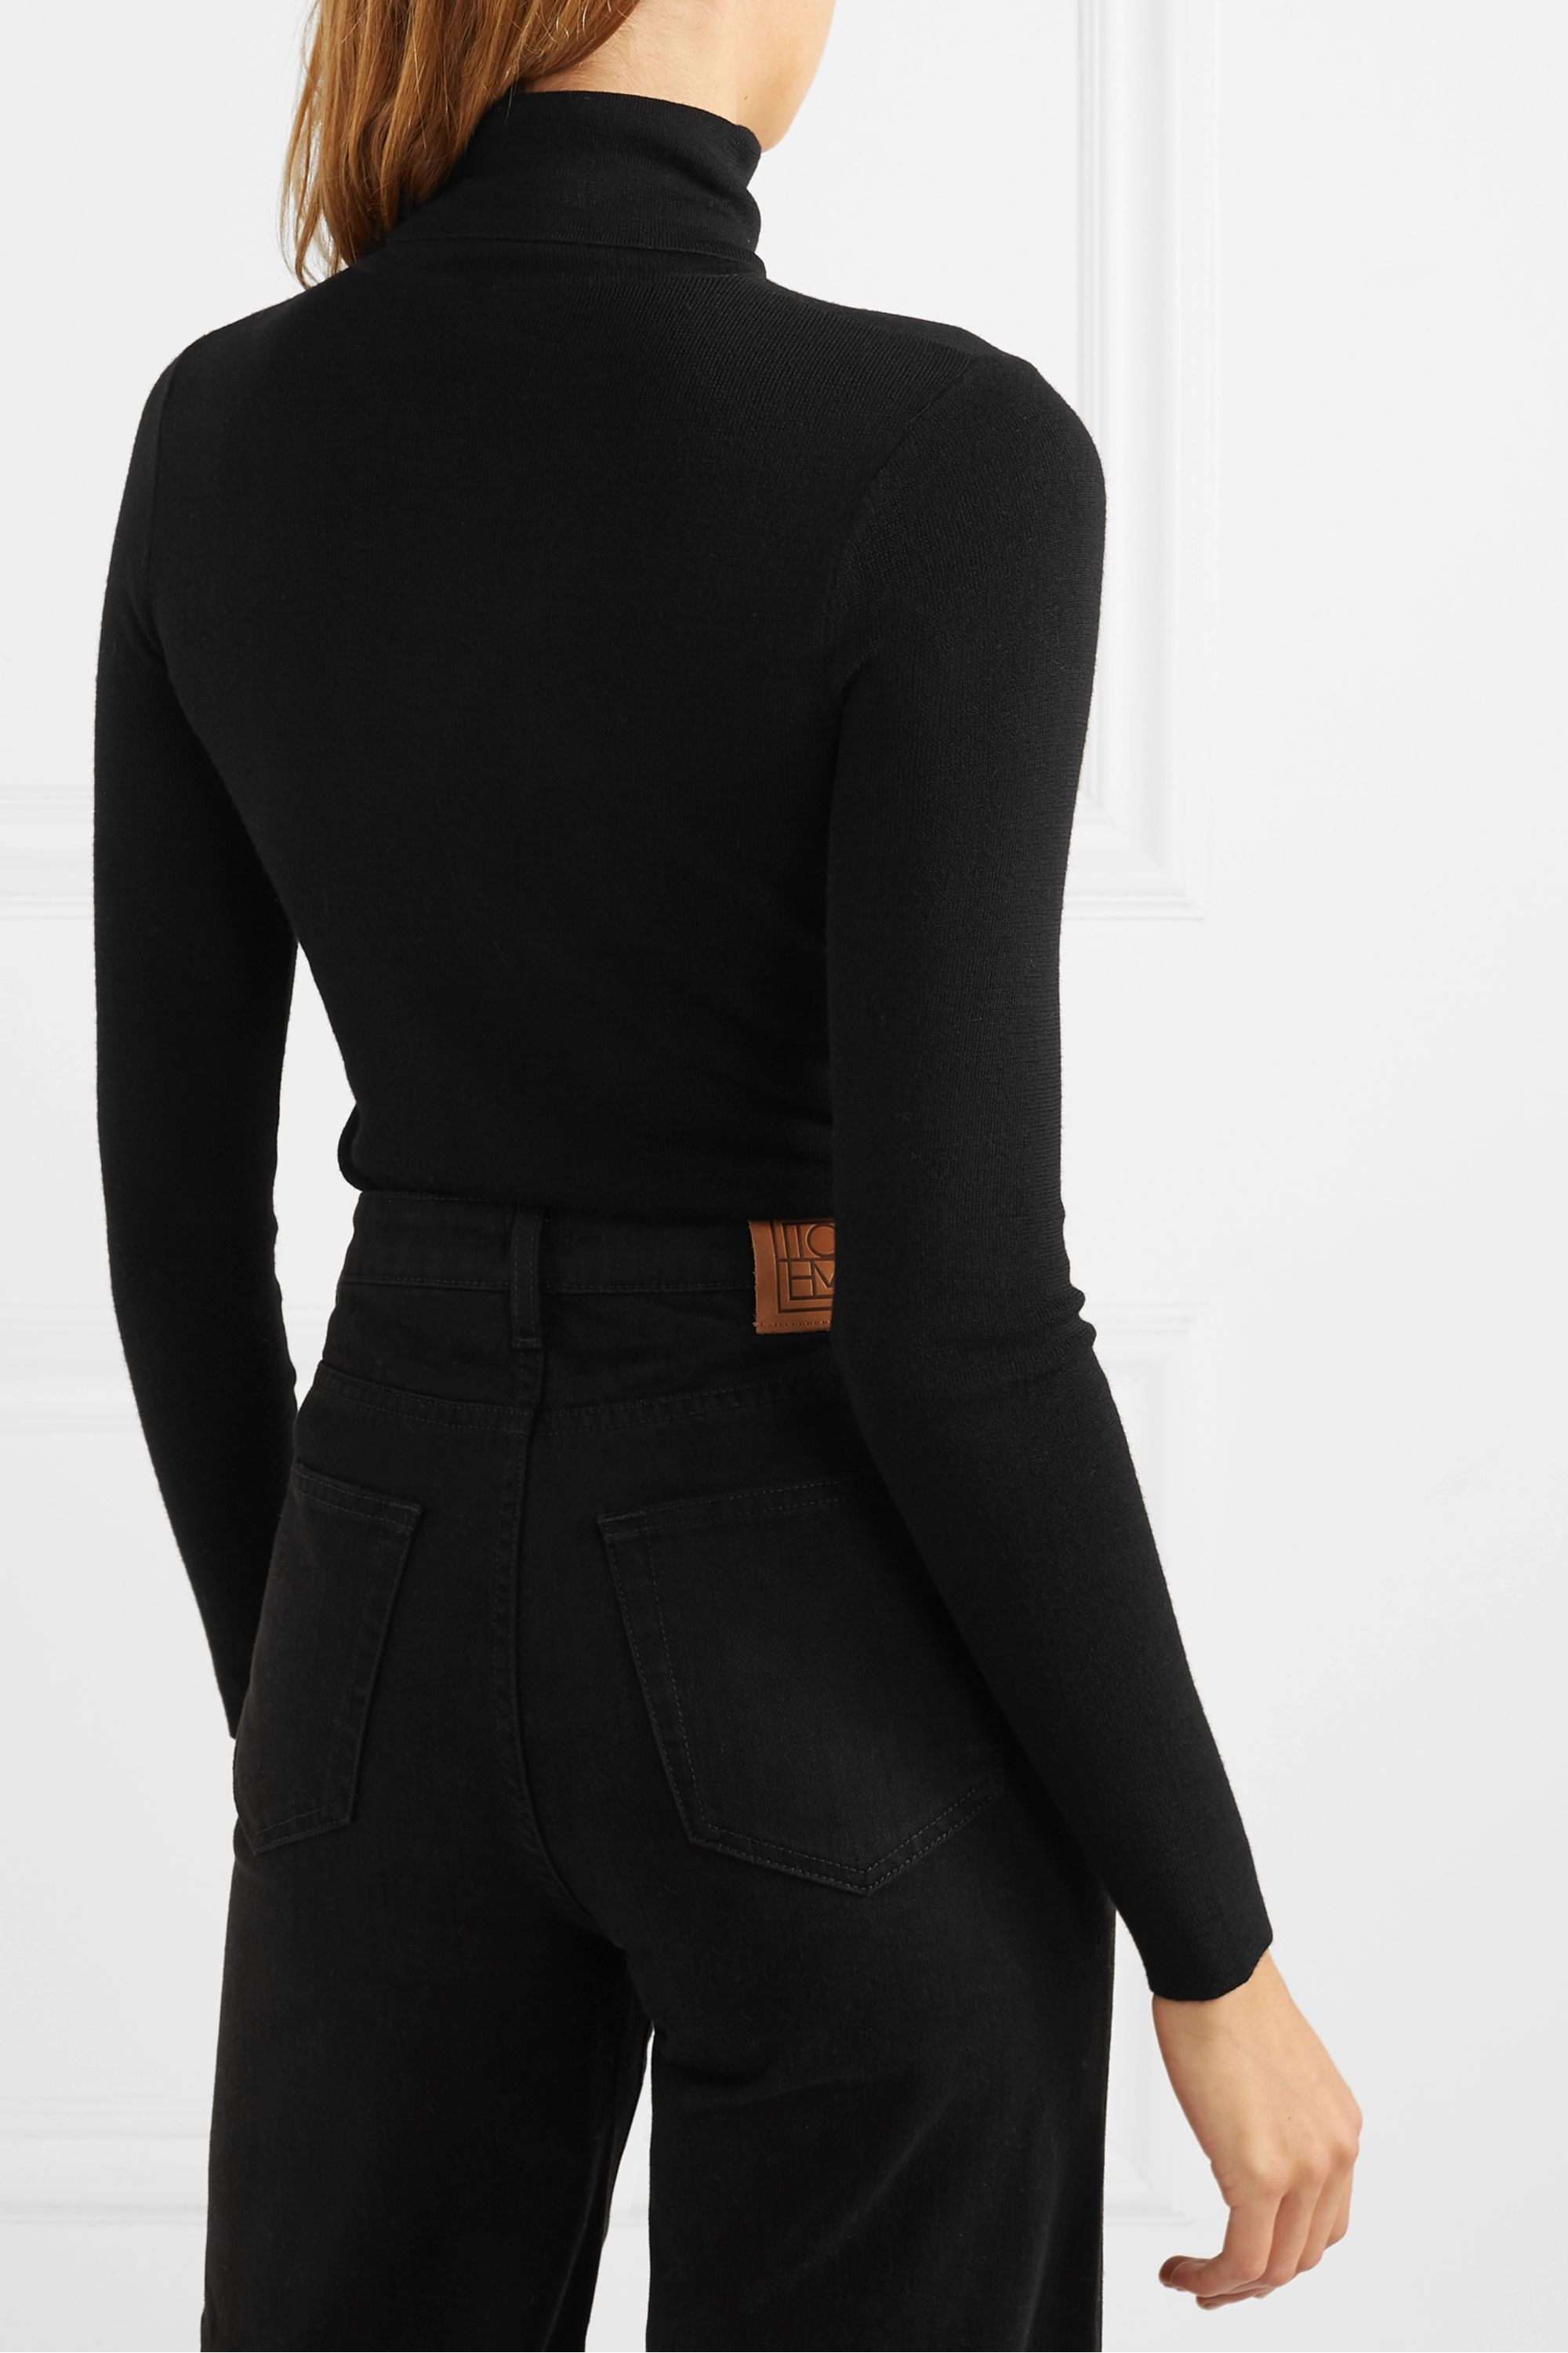 Totême Navais merino wool turtleneck top